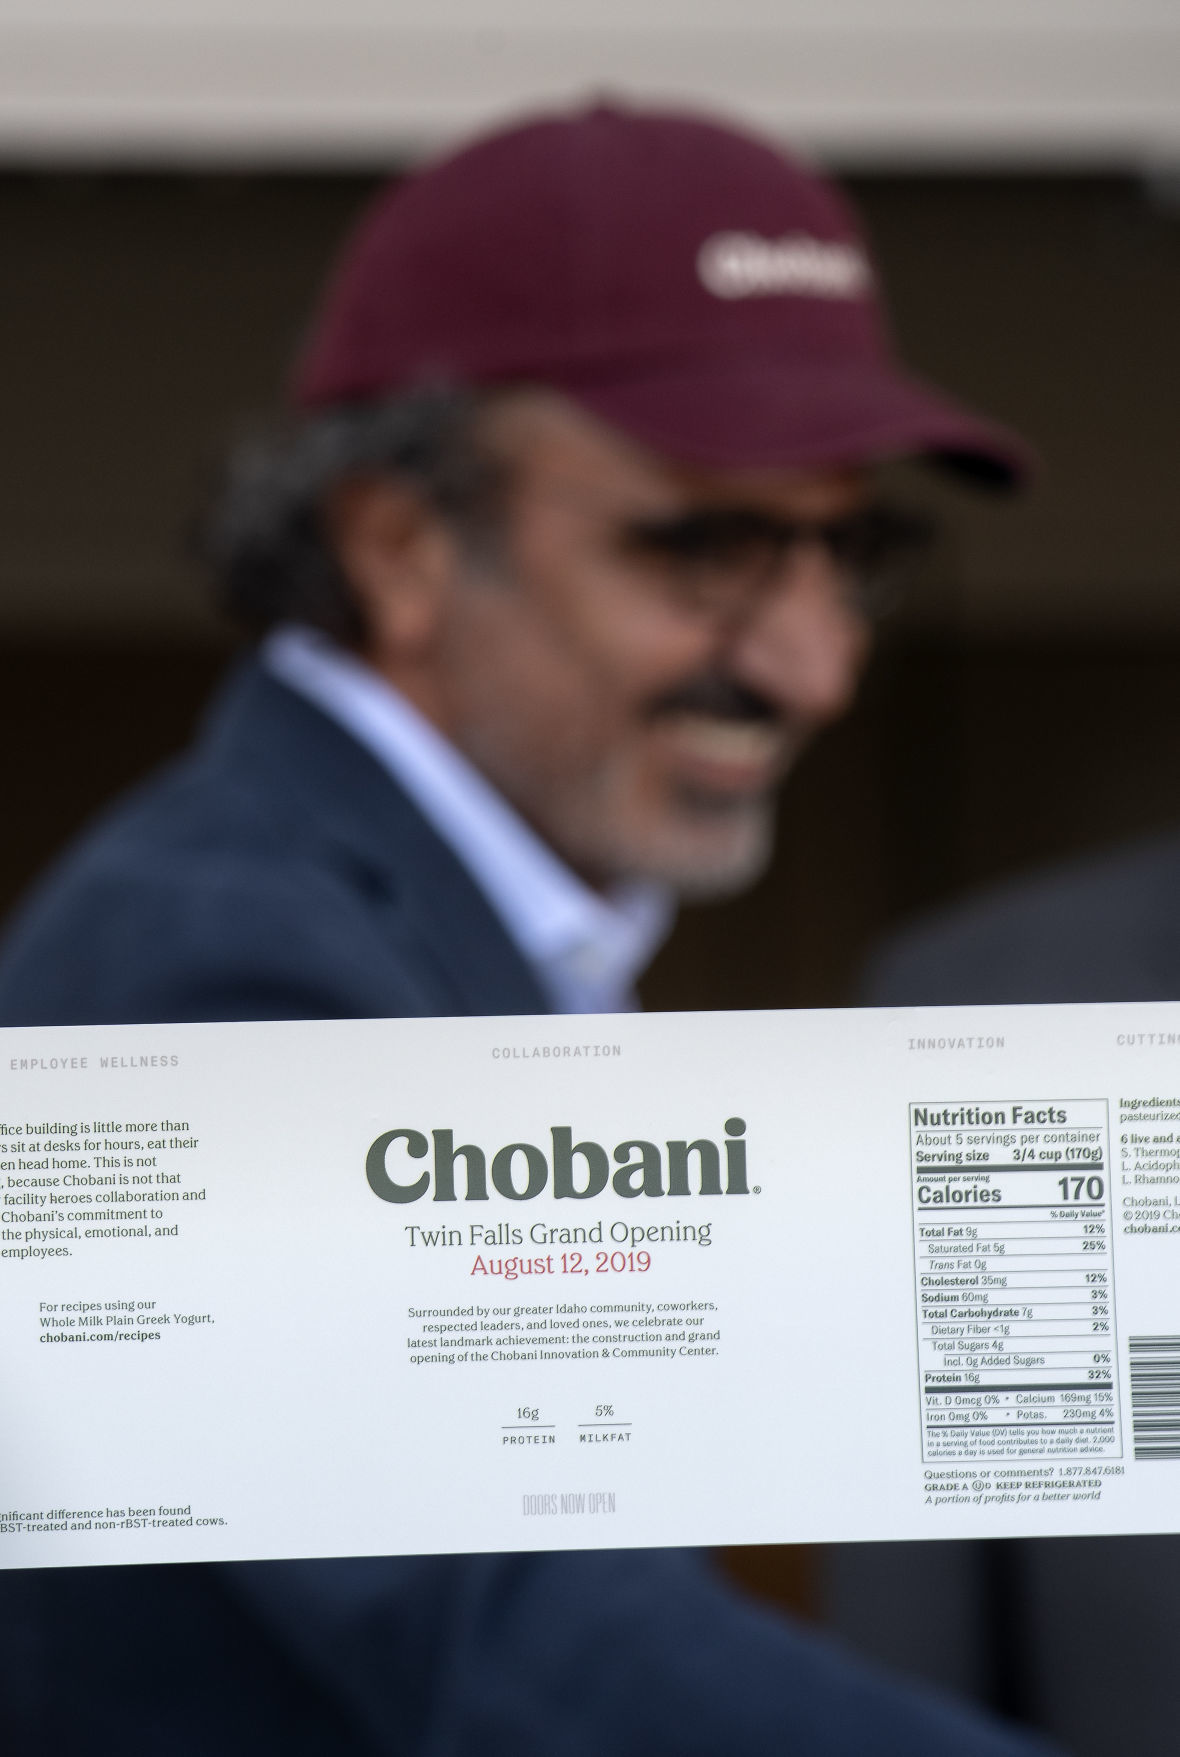 Chobani Global R&D Center